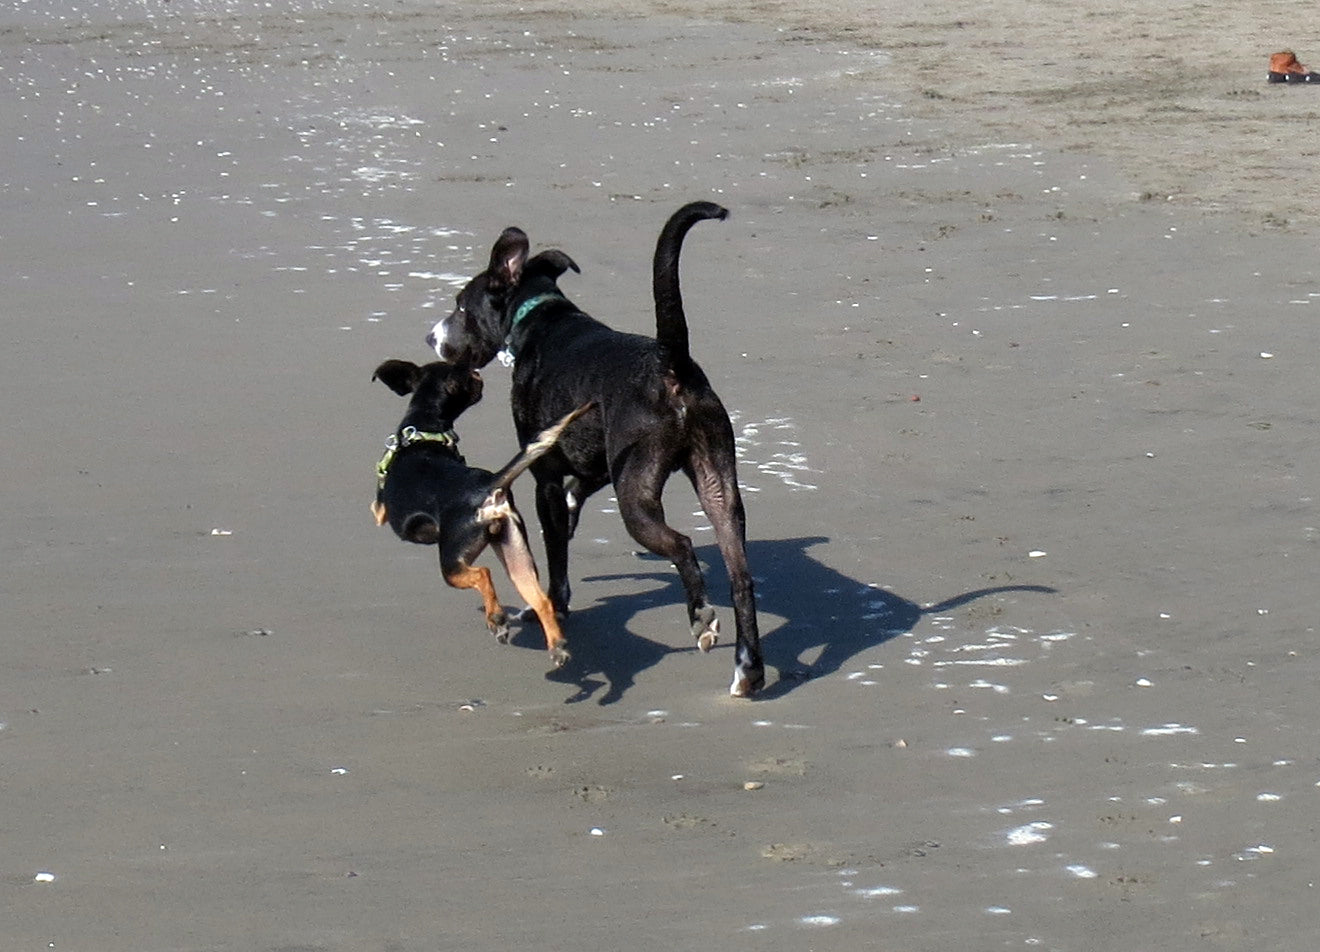 Roxy has met a friend at the beach and is trying to recruit him into the animal testing program by showing him how fun it is to be her.